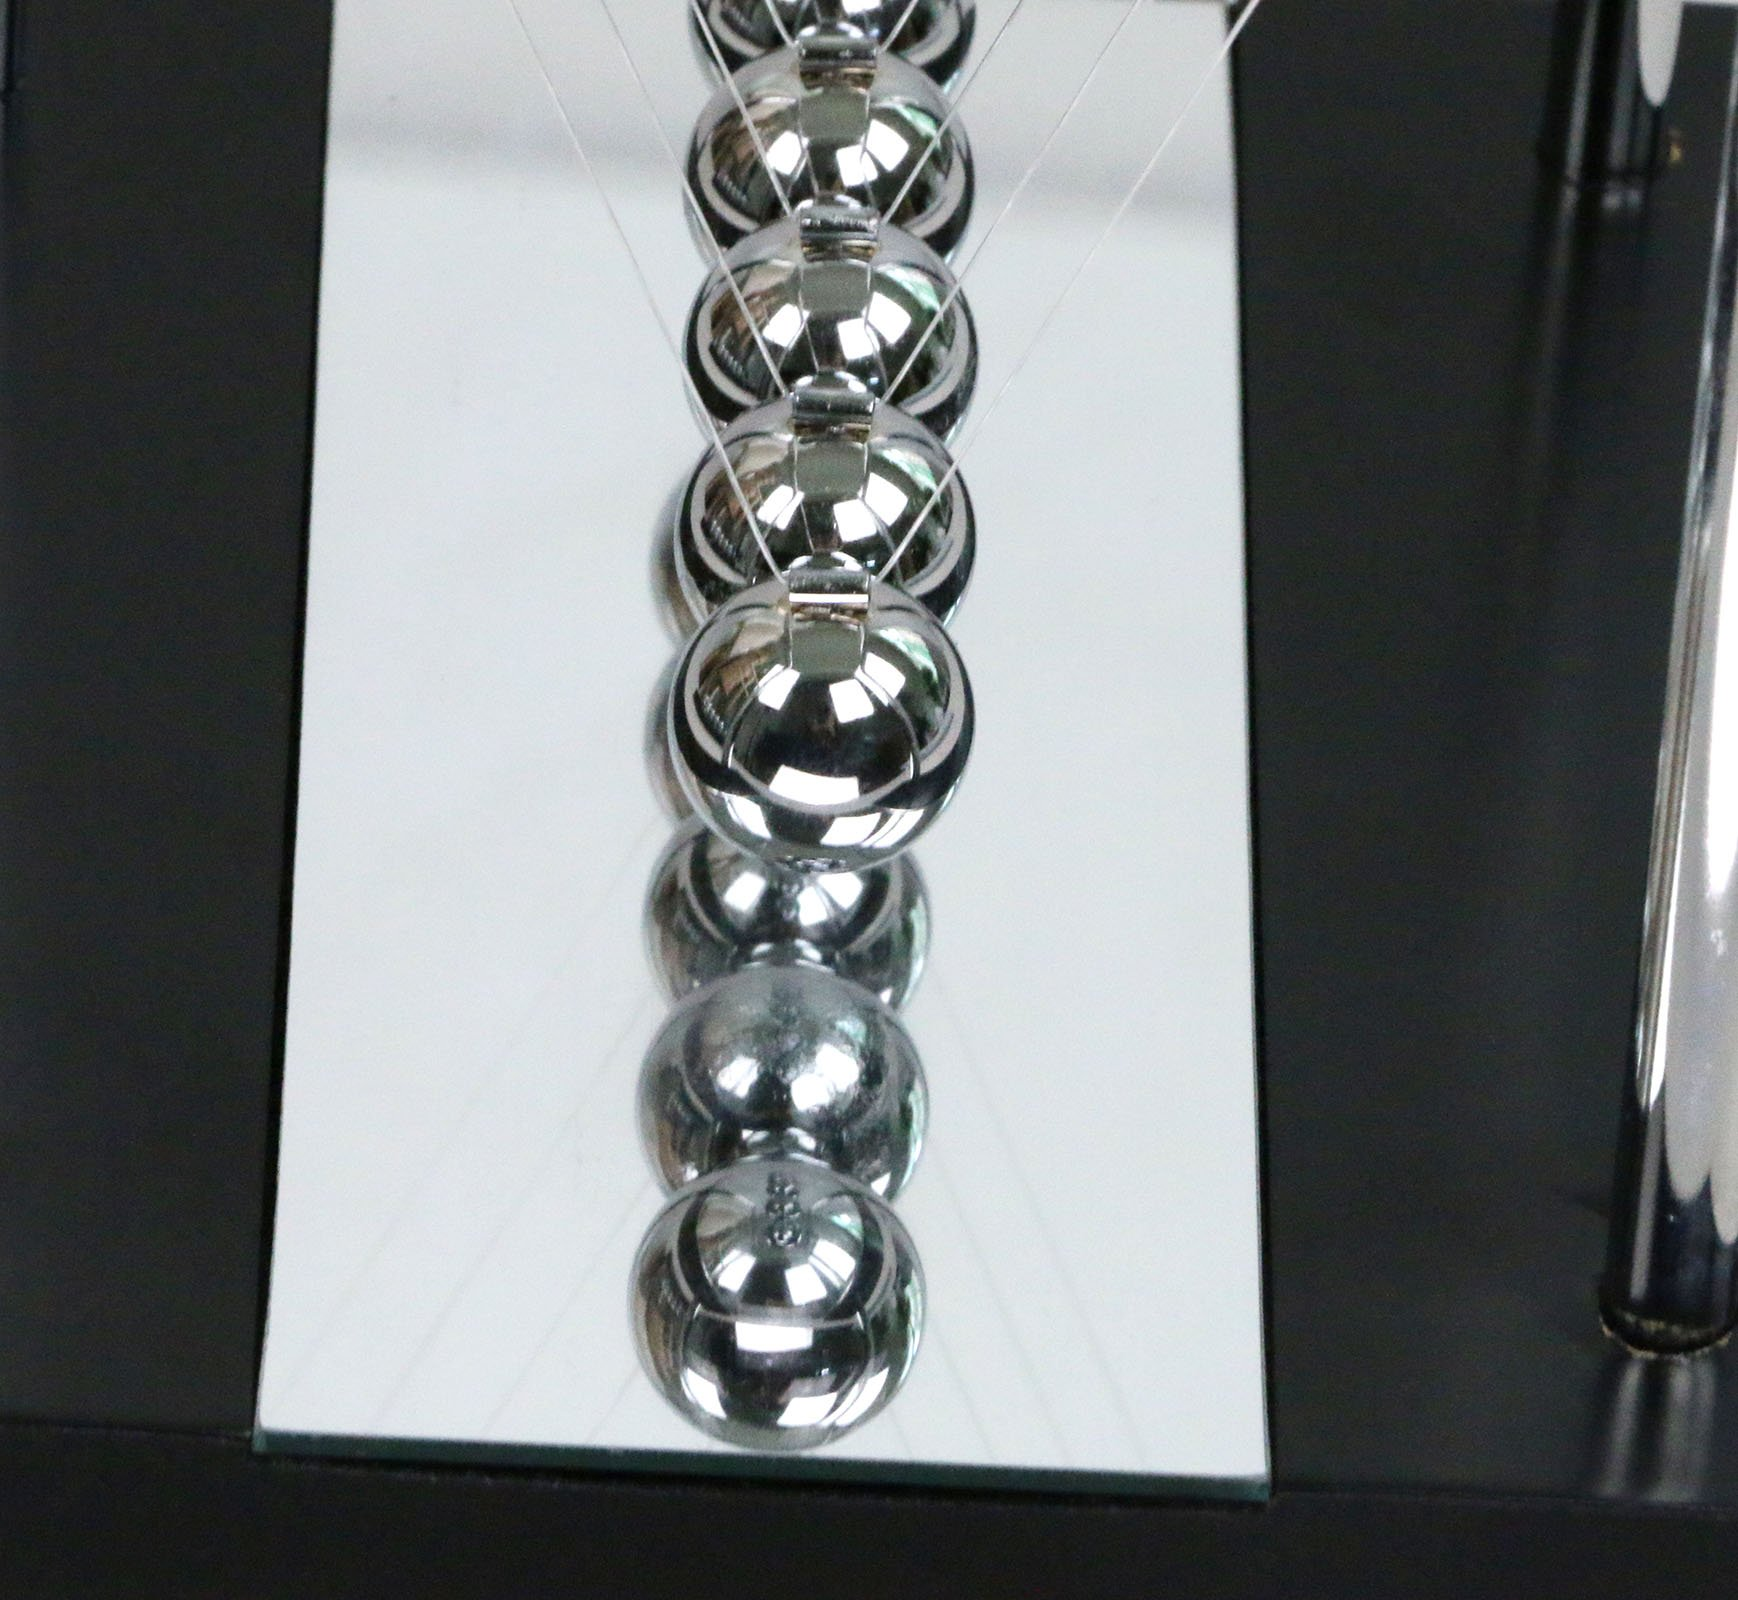 BOJIN Mirror Newton's Cradle Balance Ball Science Kinetic Energy Sculpture - Medium Mirror by BOJIN (Image #6)